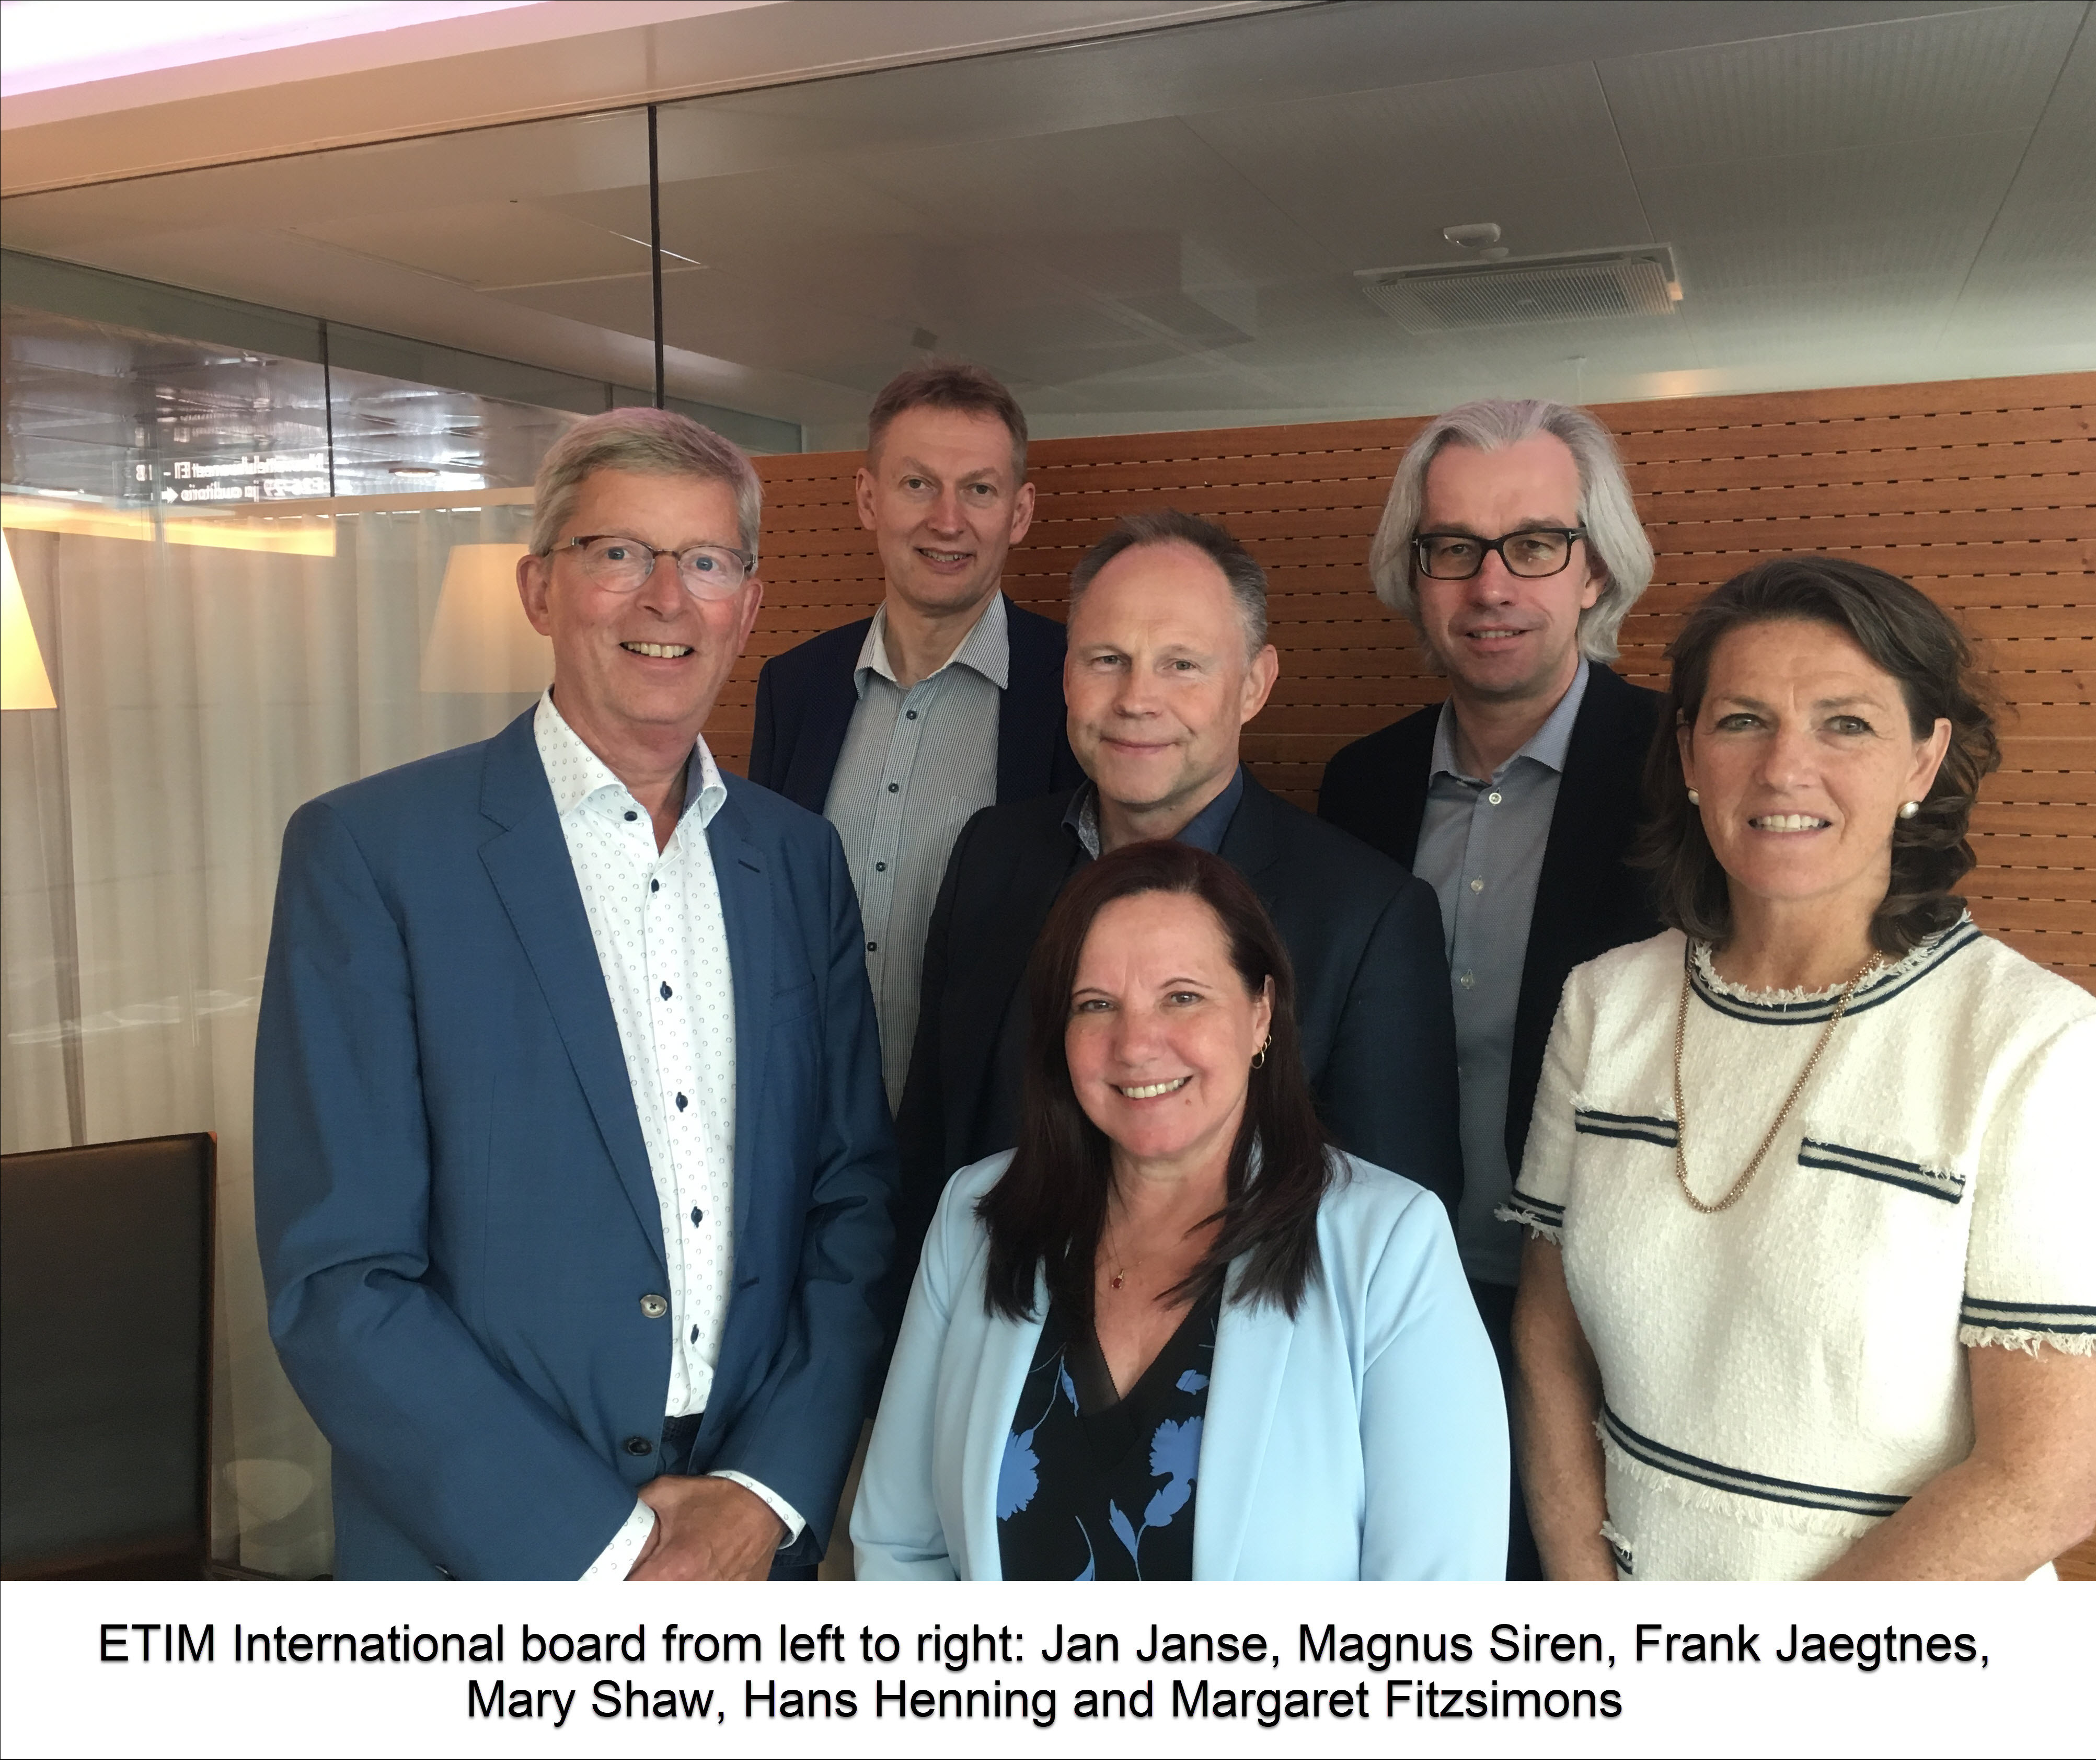 Changes at the Board of ETIM International